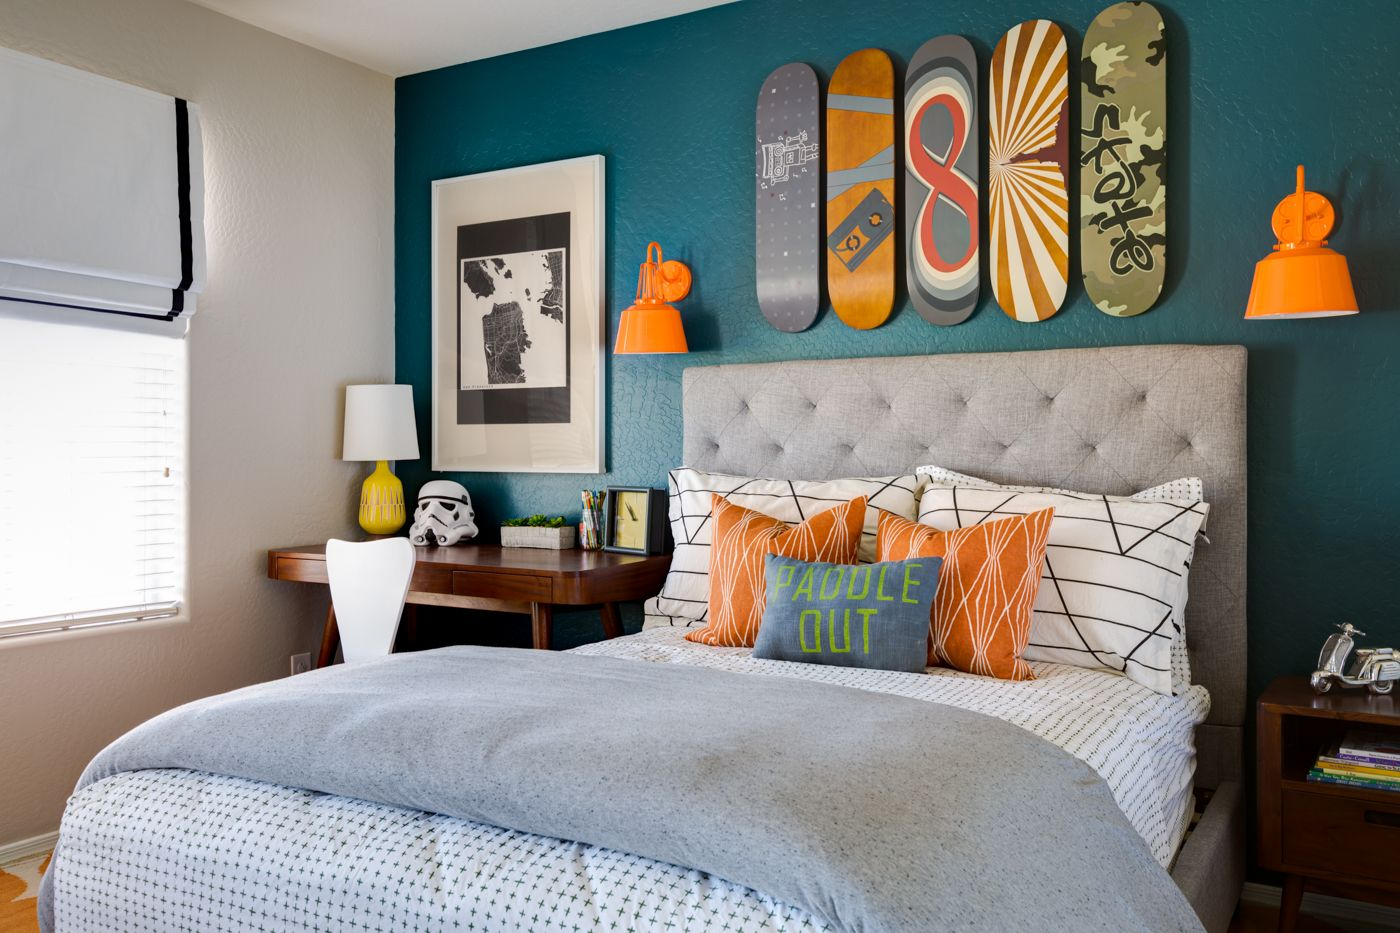 Project nursery teal and orange skateboarding bedroom kids rooms pinterest project - Boys room decor ...